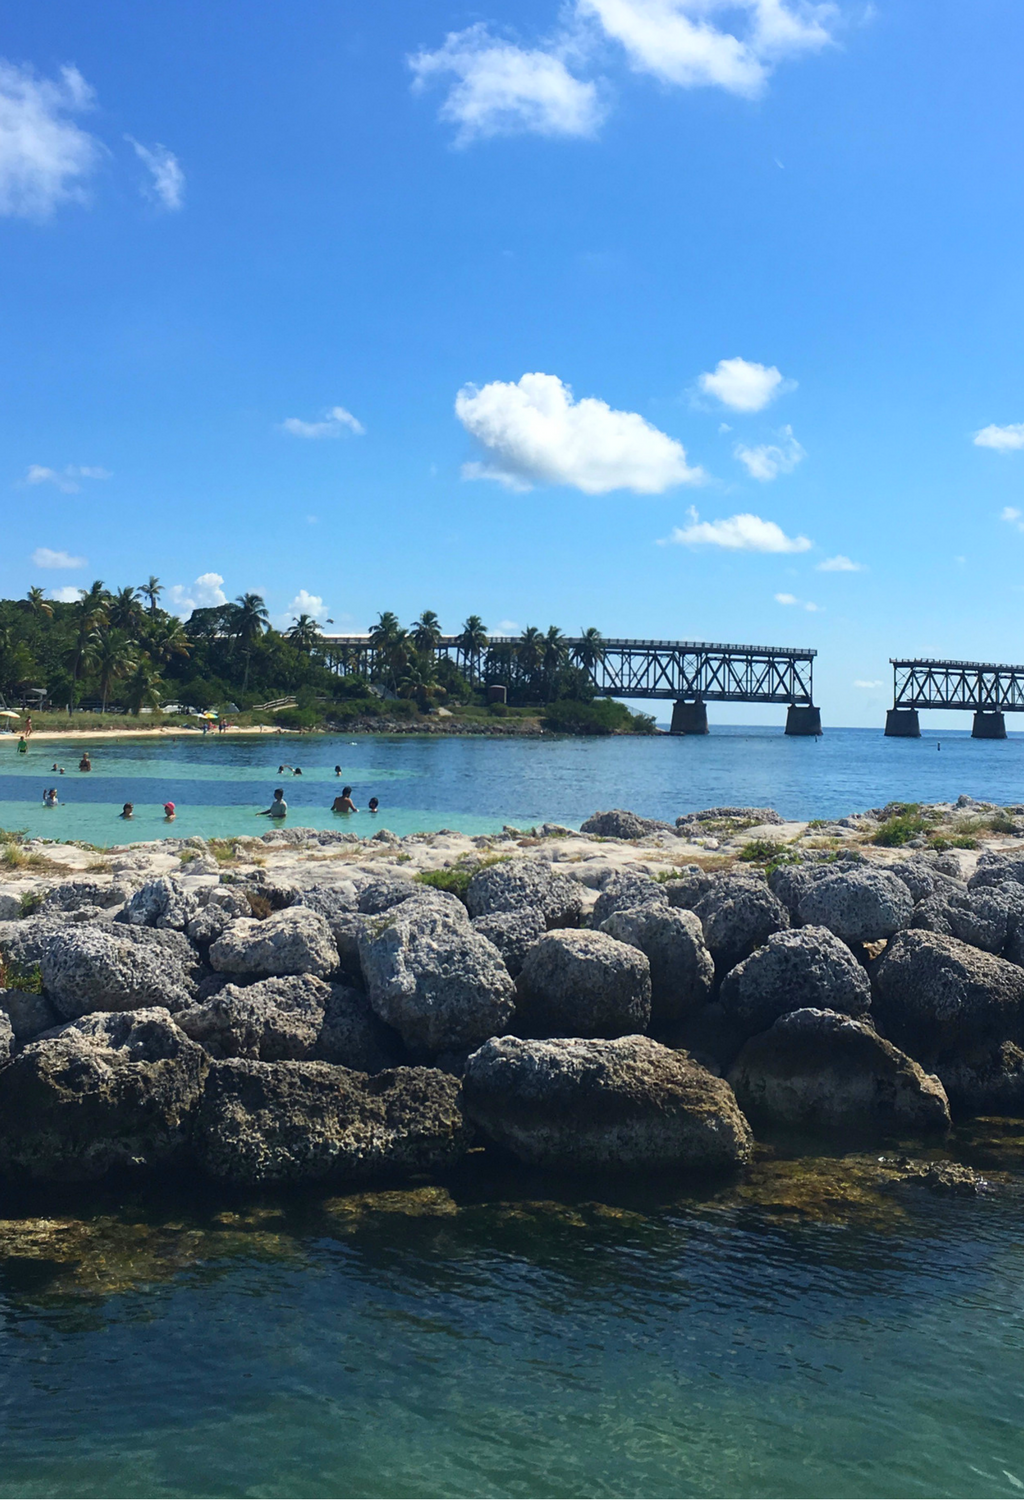 Looking for one of the best beaches in the Florida Keys? Check out Bahia Honda State Park.